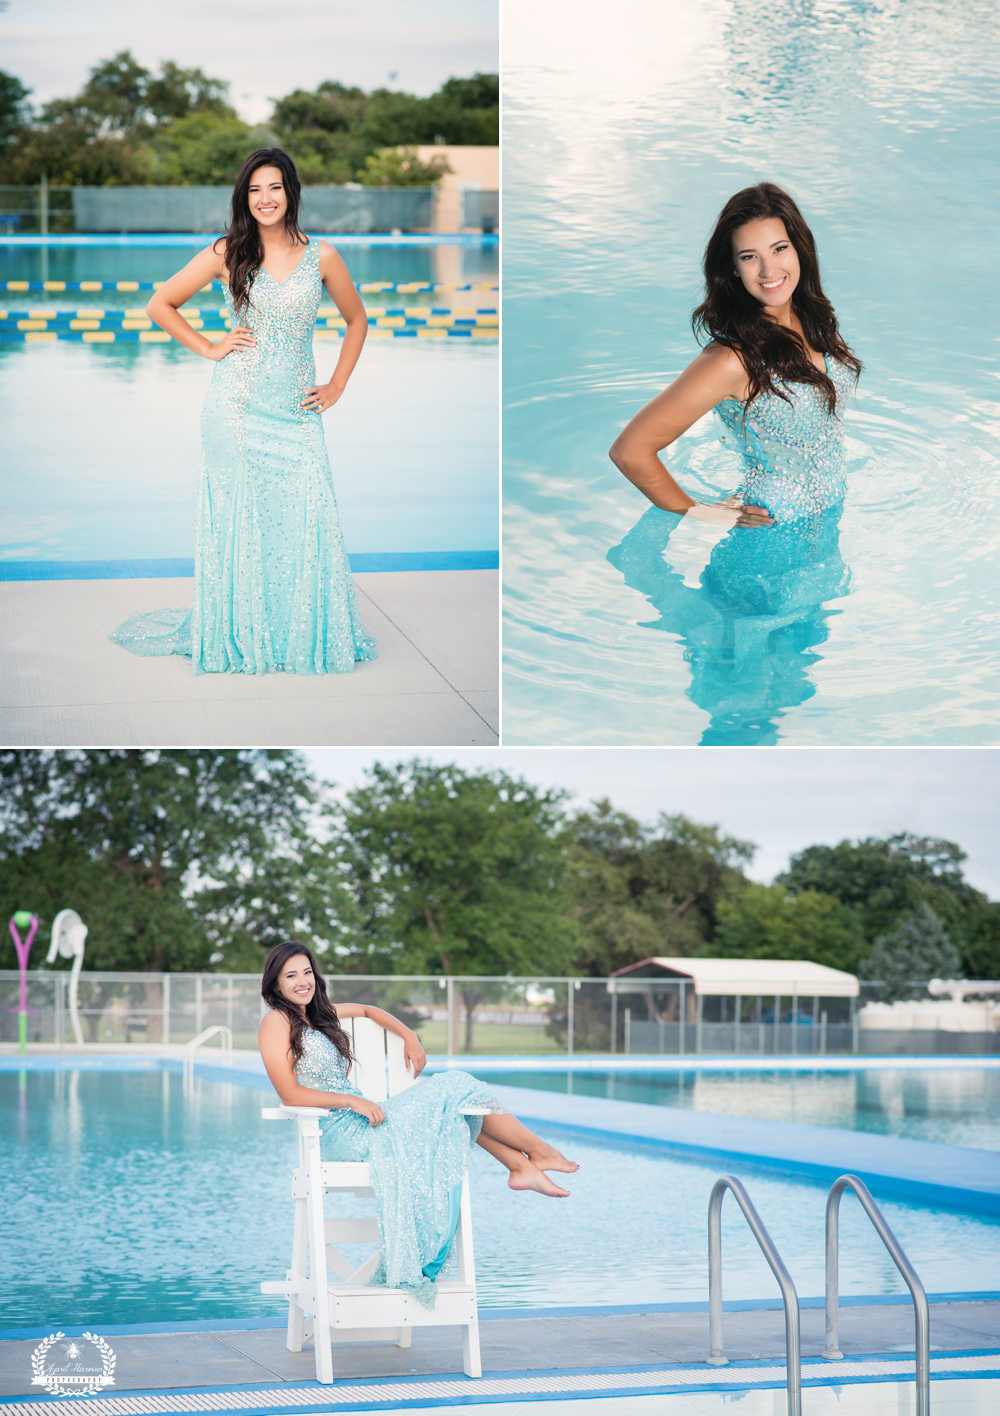 Chelsey garden city ks senior 2016 april harmon for Garden city pool 2015